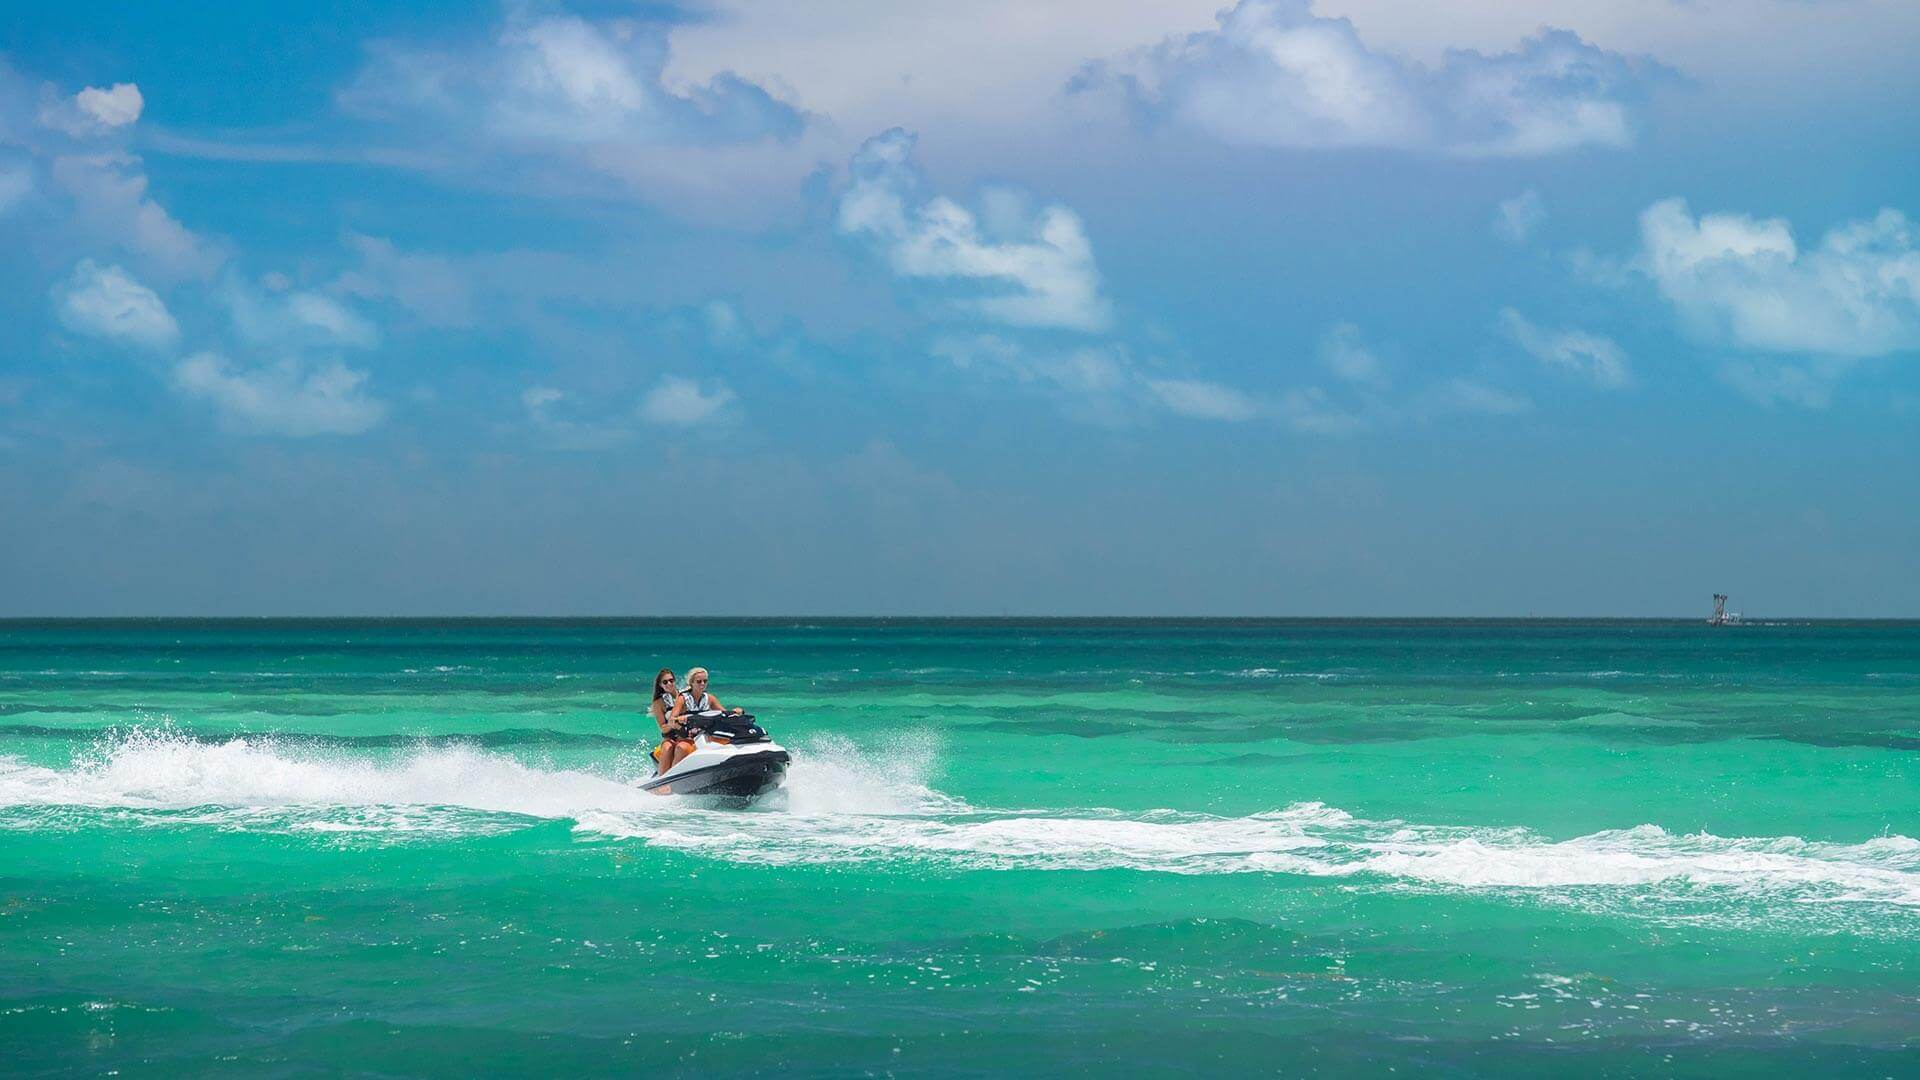 Girls on jet skis in Key West